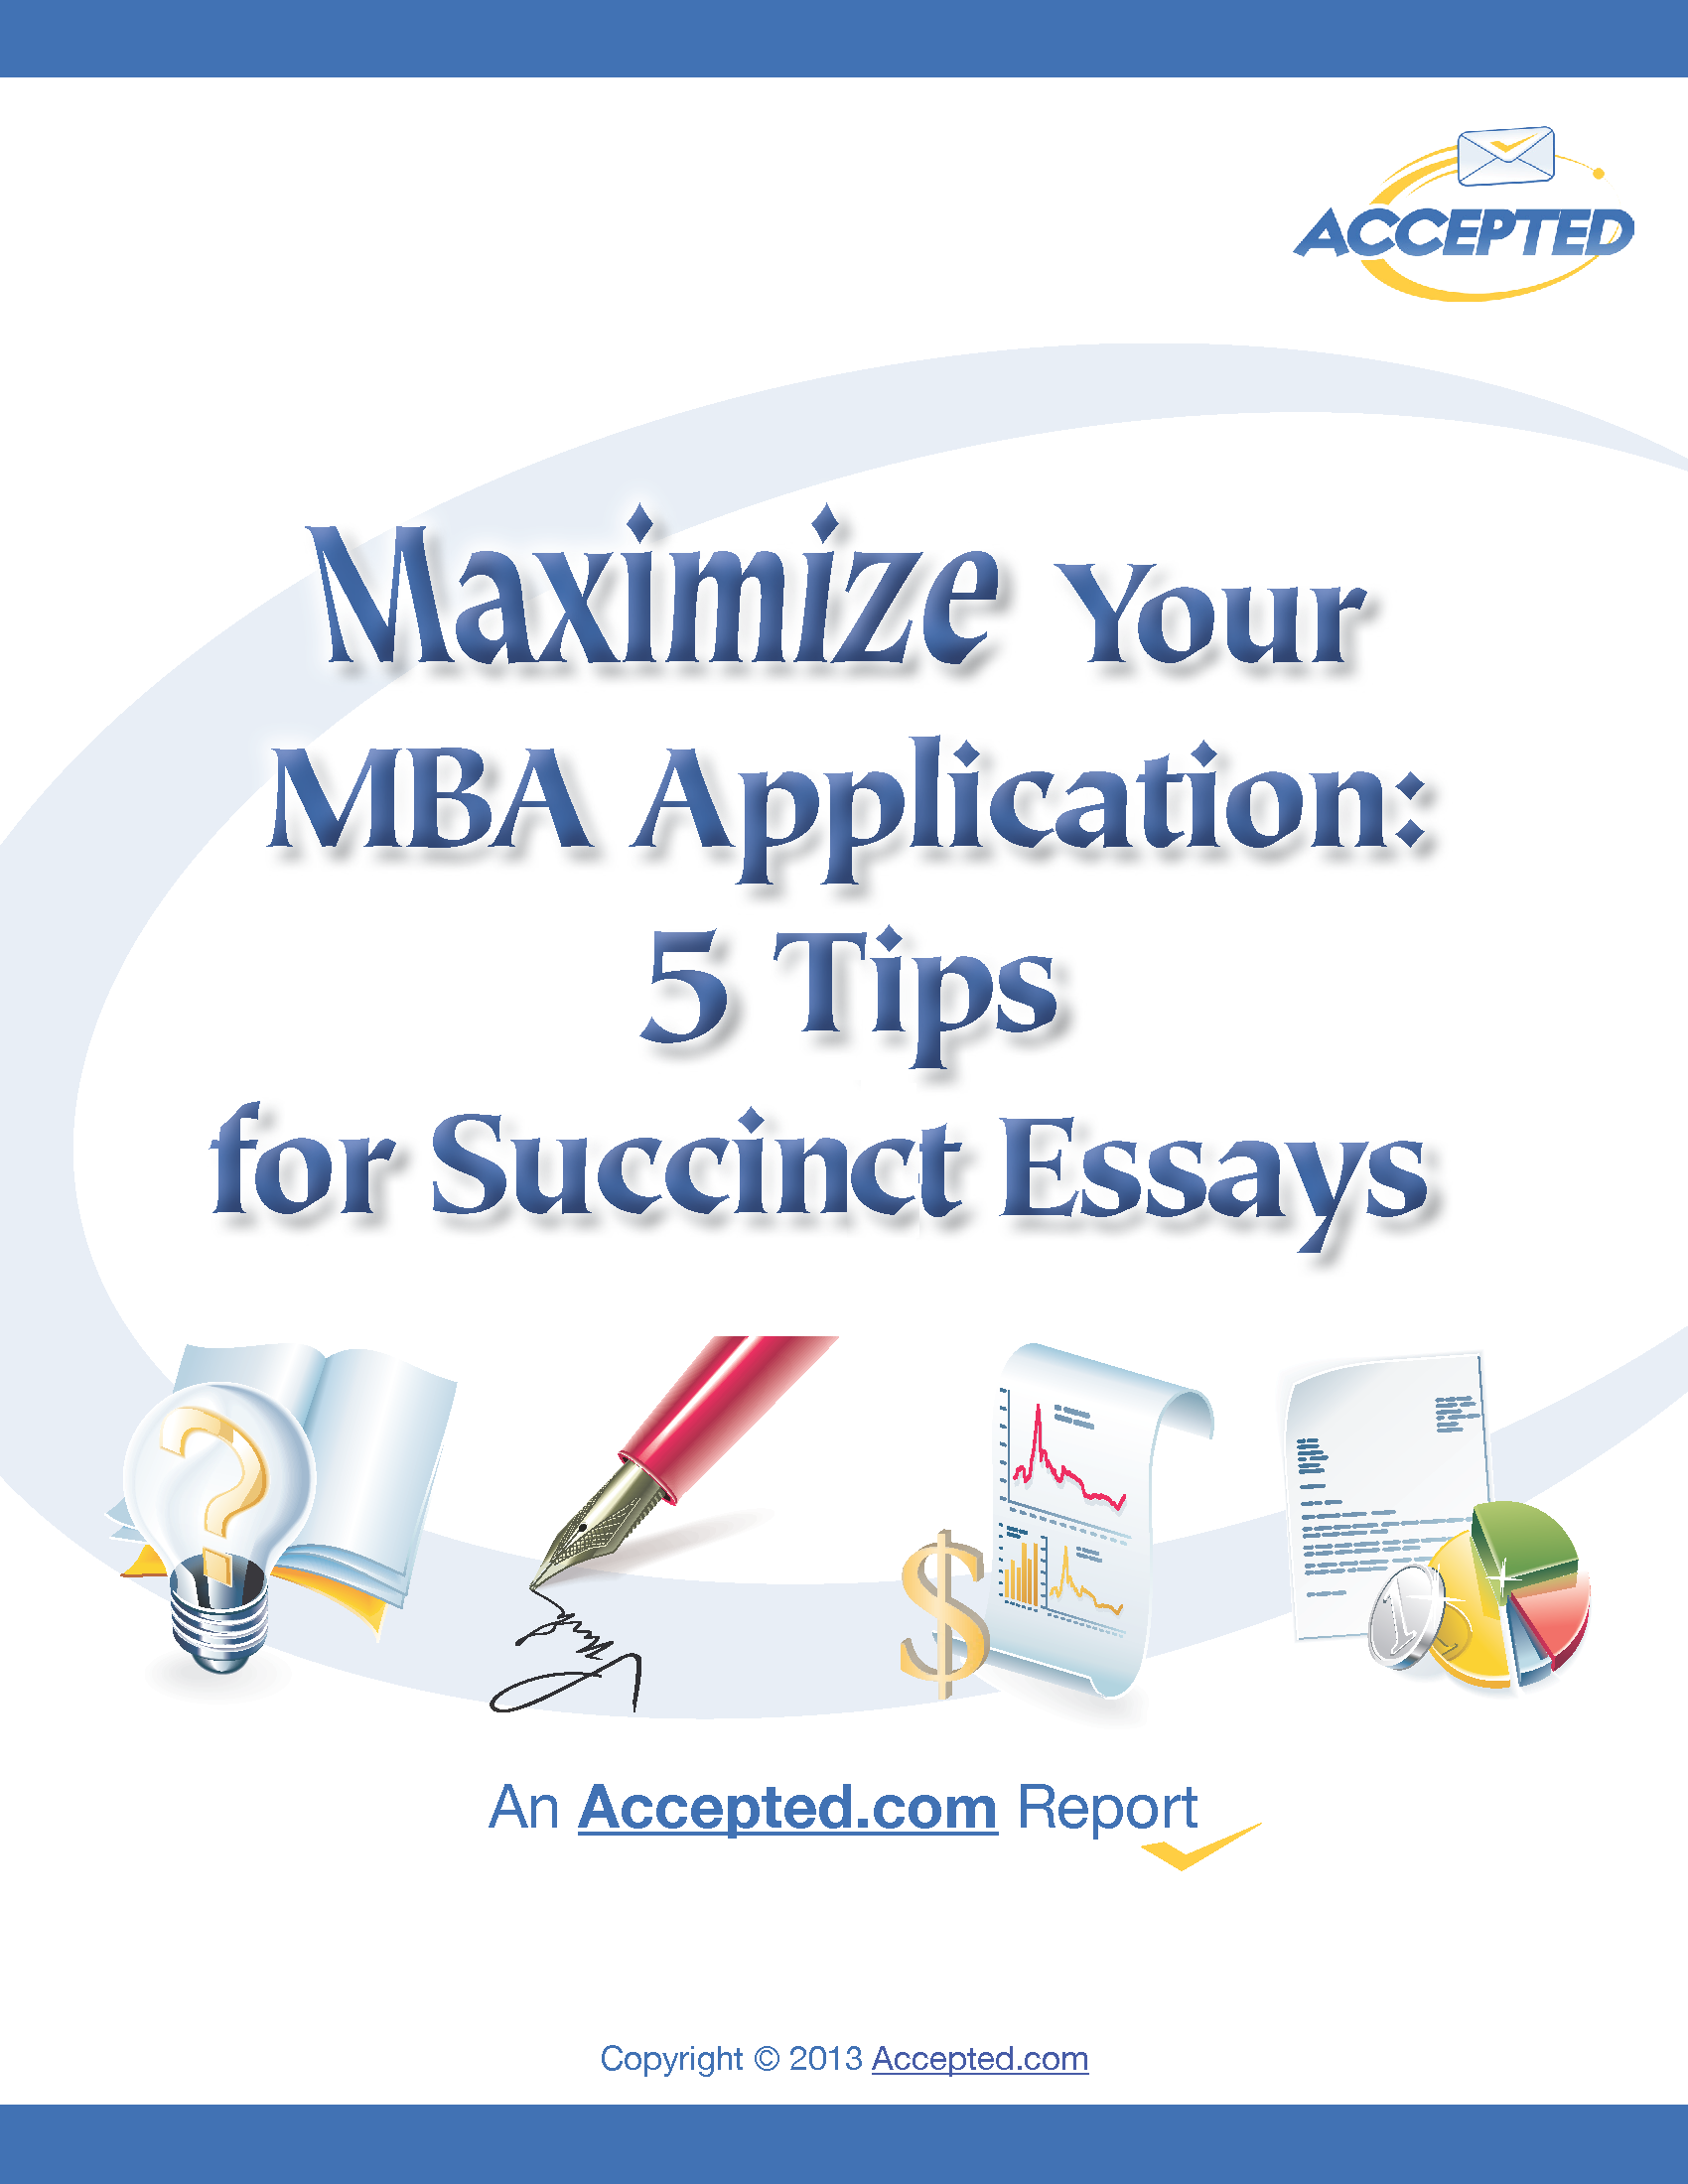 Mba essay torrent